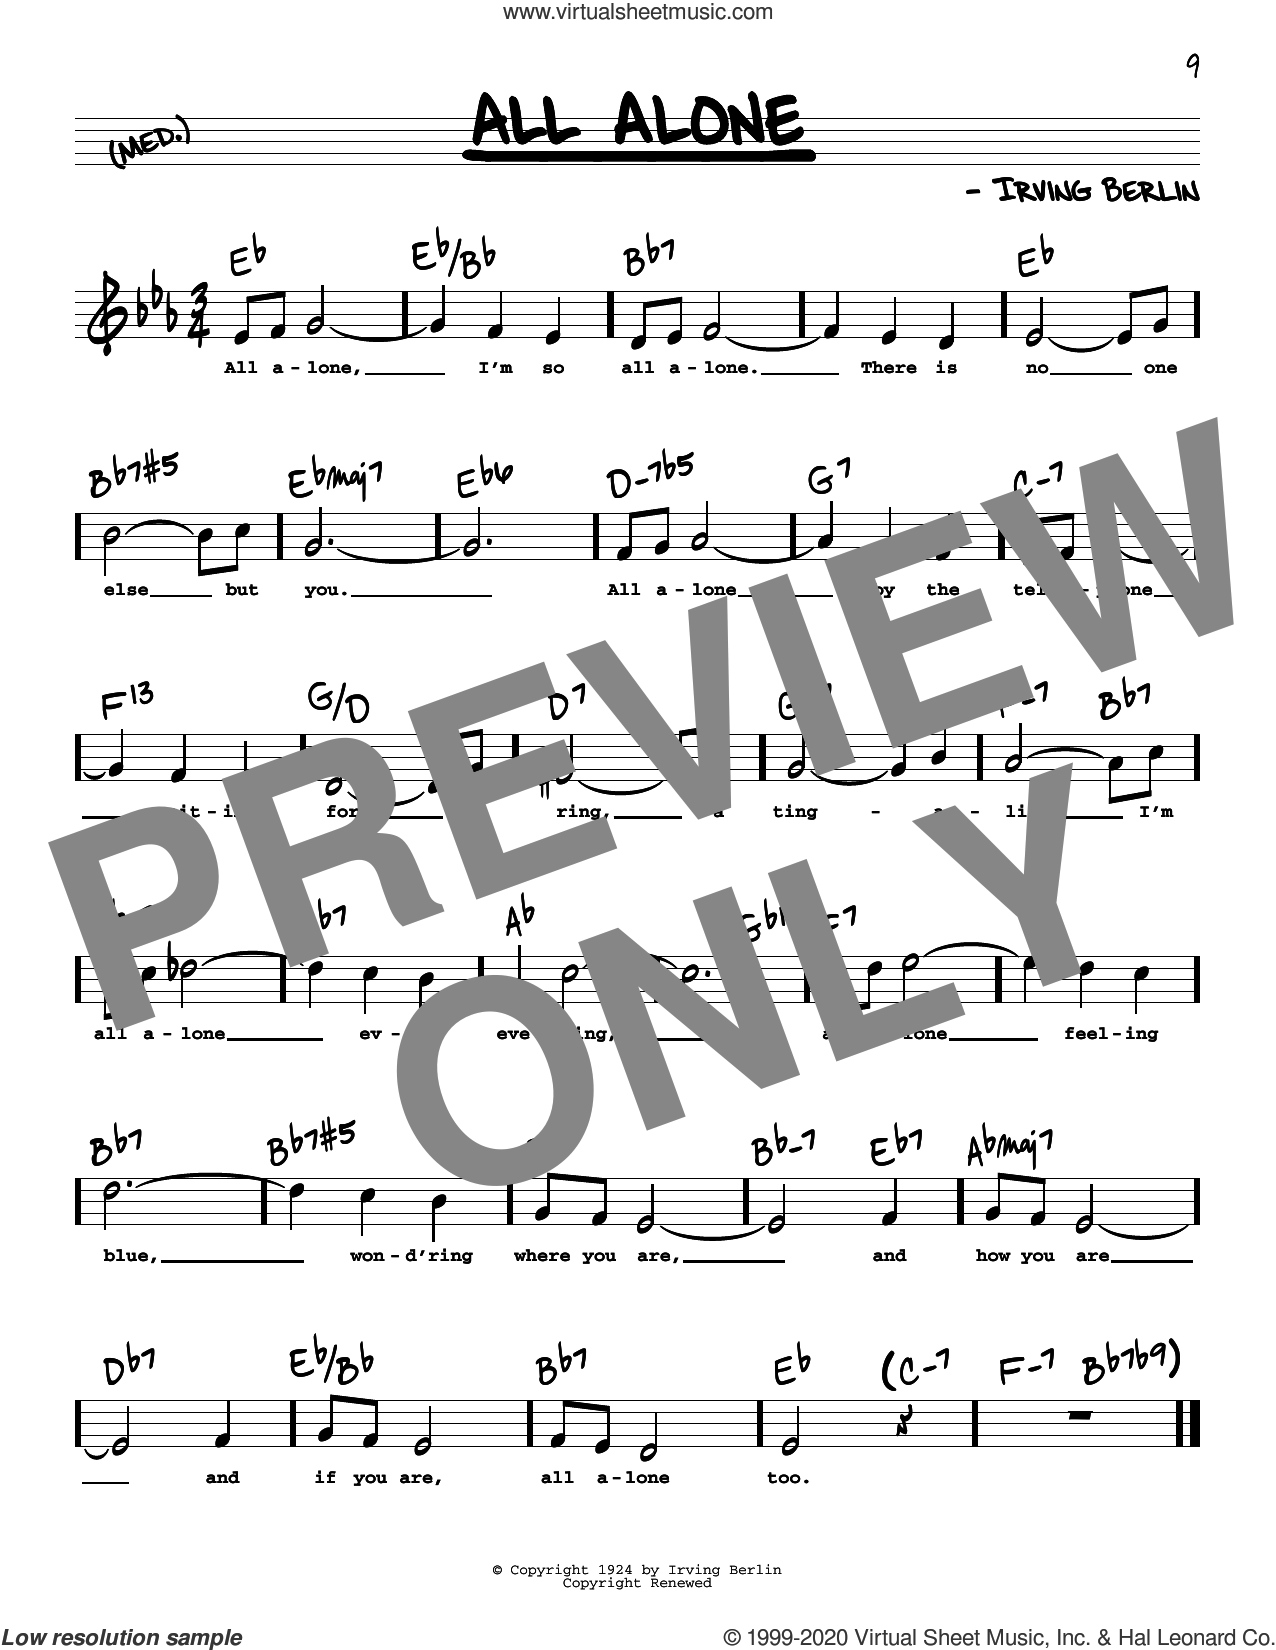 All Alone (High Voice) sheet music for voice and other instruments (high voice) by Irving Berlin, Al Jolson and Alice Faye, intermediate skill level